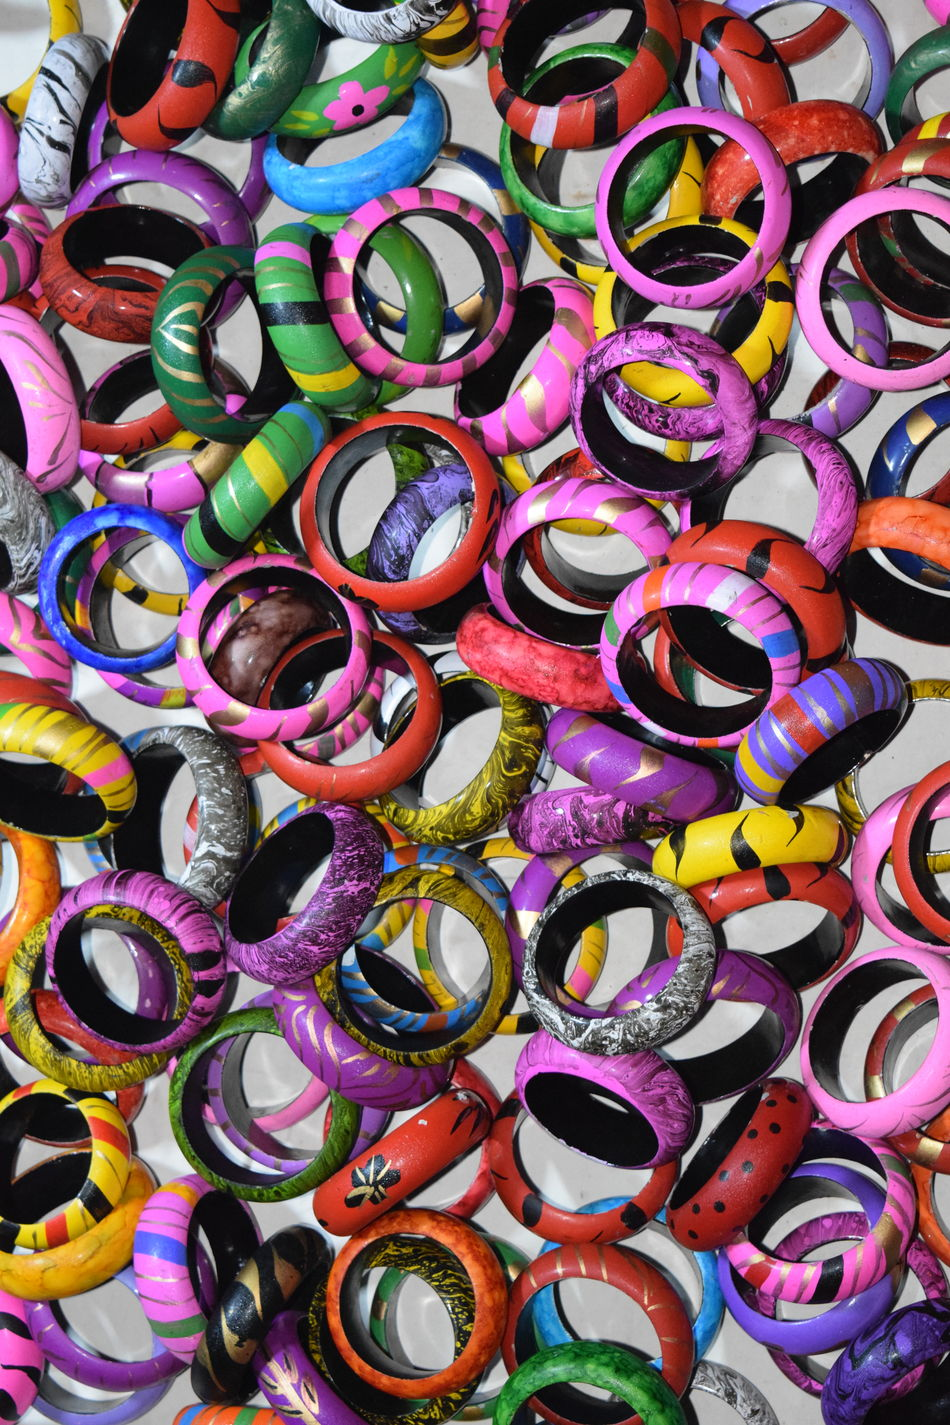 Shellac multicoloured bangles Pattern Multi Colored Shape Shellac Full Frame Close-up Multicolored Eyeem4photography EyeEm Vision EyeEm Gallery Nikon Photography Eyeemphotography Eyeem Photography Eyeem Market Bangle EyeEm NIKON D5300 Powder Paint Backgrounds Large Group Of Objects Abundance Outdoors